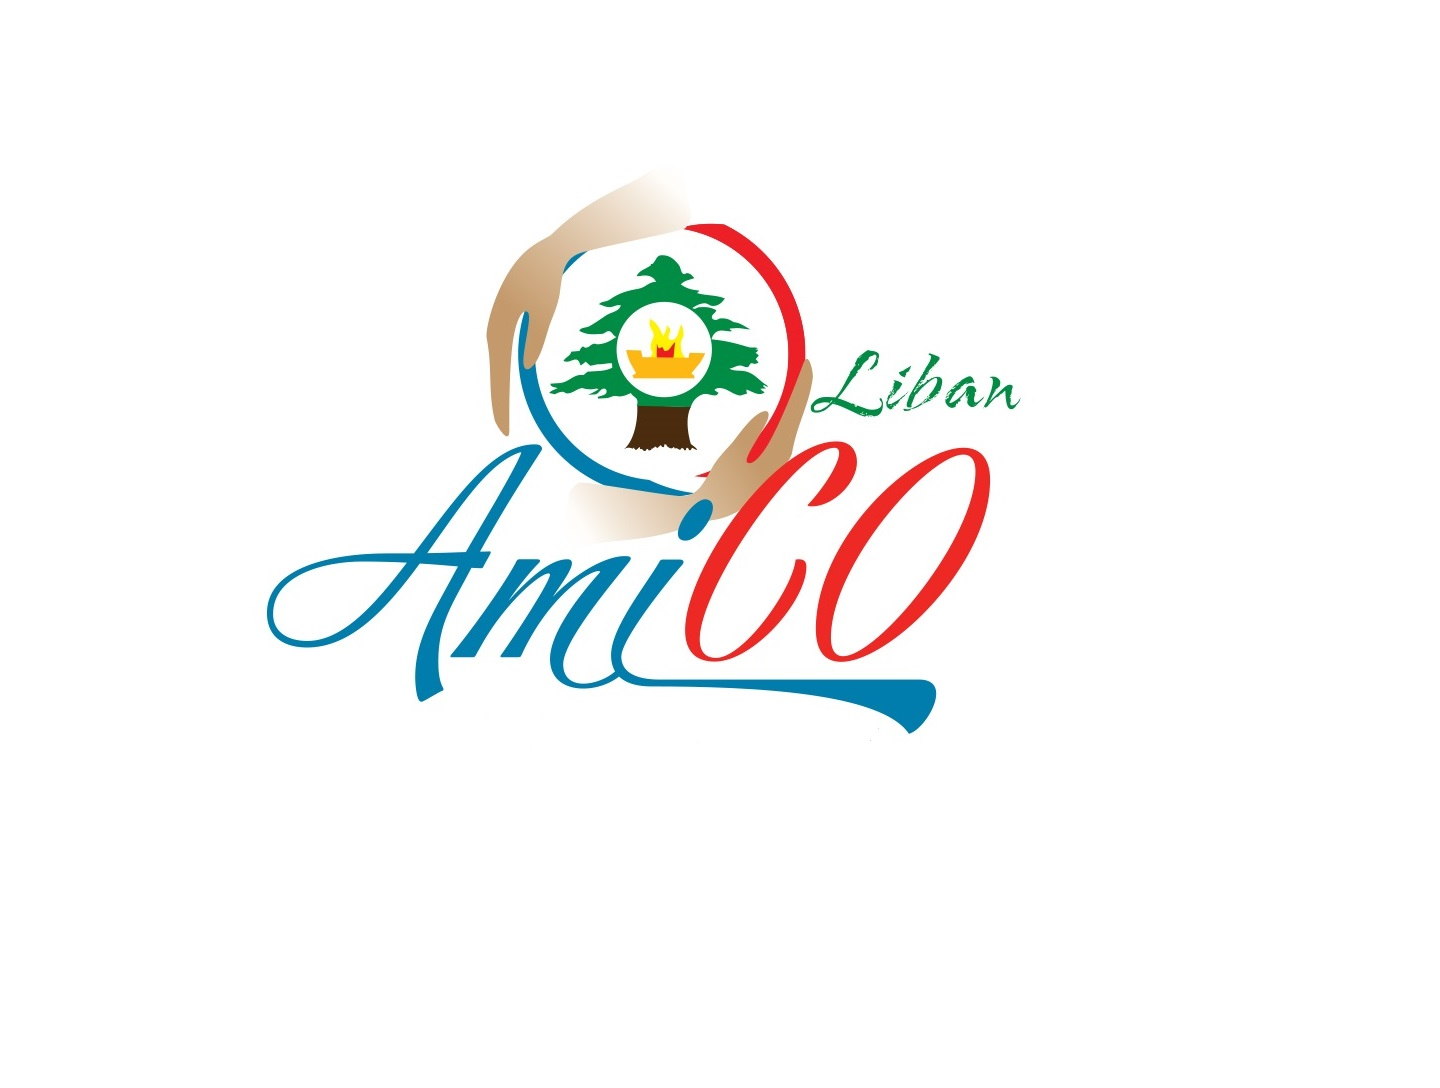 Association AmiCO Liban